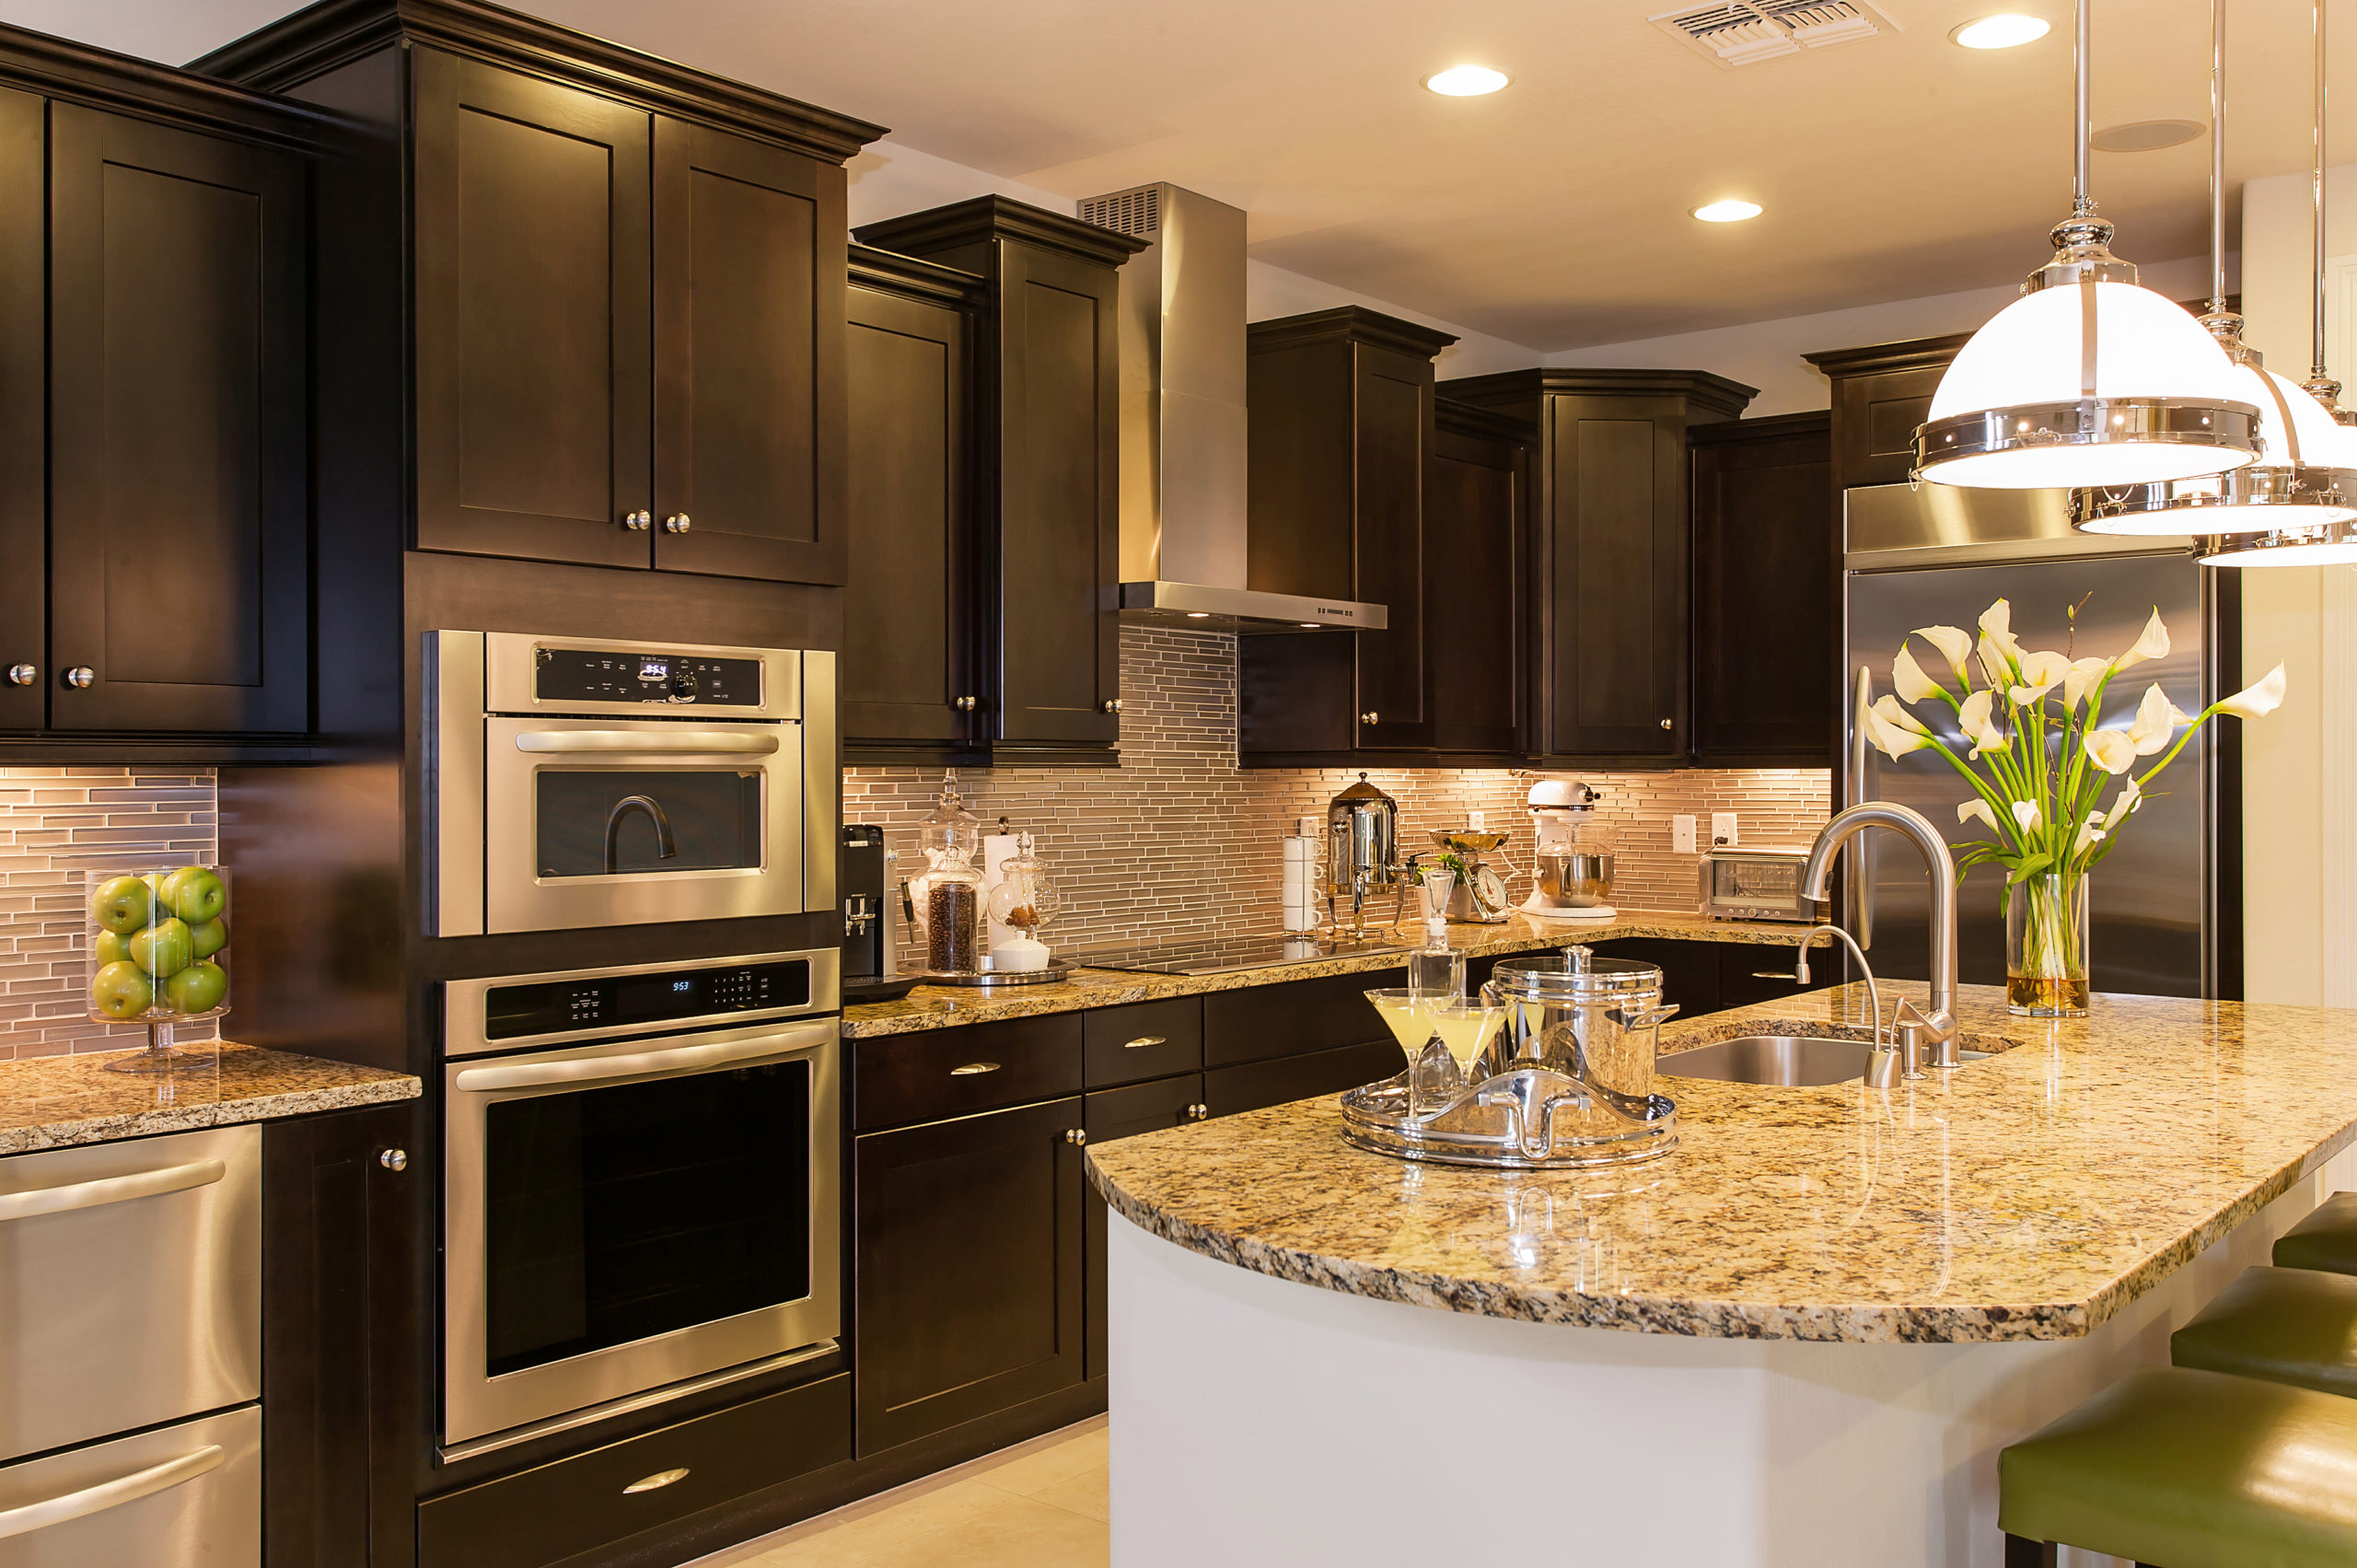 Luxury kitchen with black cabinets and large island